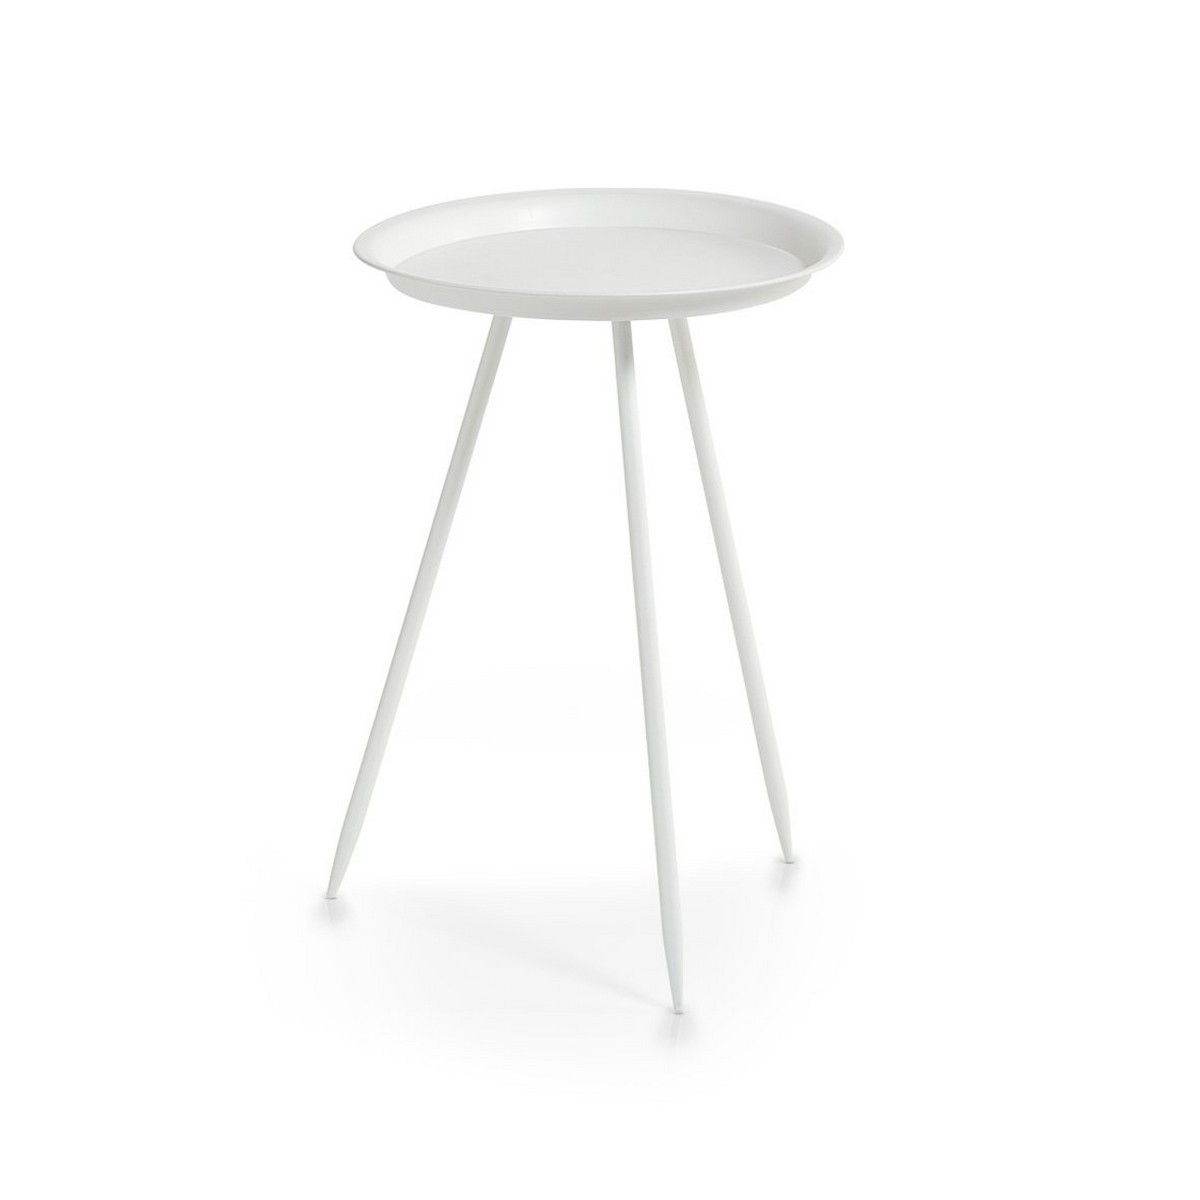 Table Metal Blanc Table Basse 3 Pieds Metal Blanc Zeller 17002 Kdesign